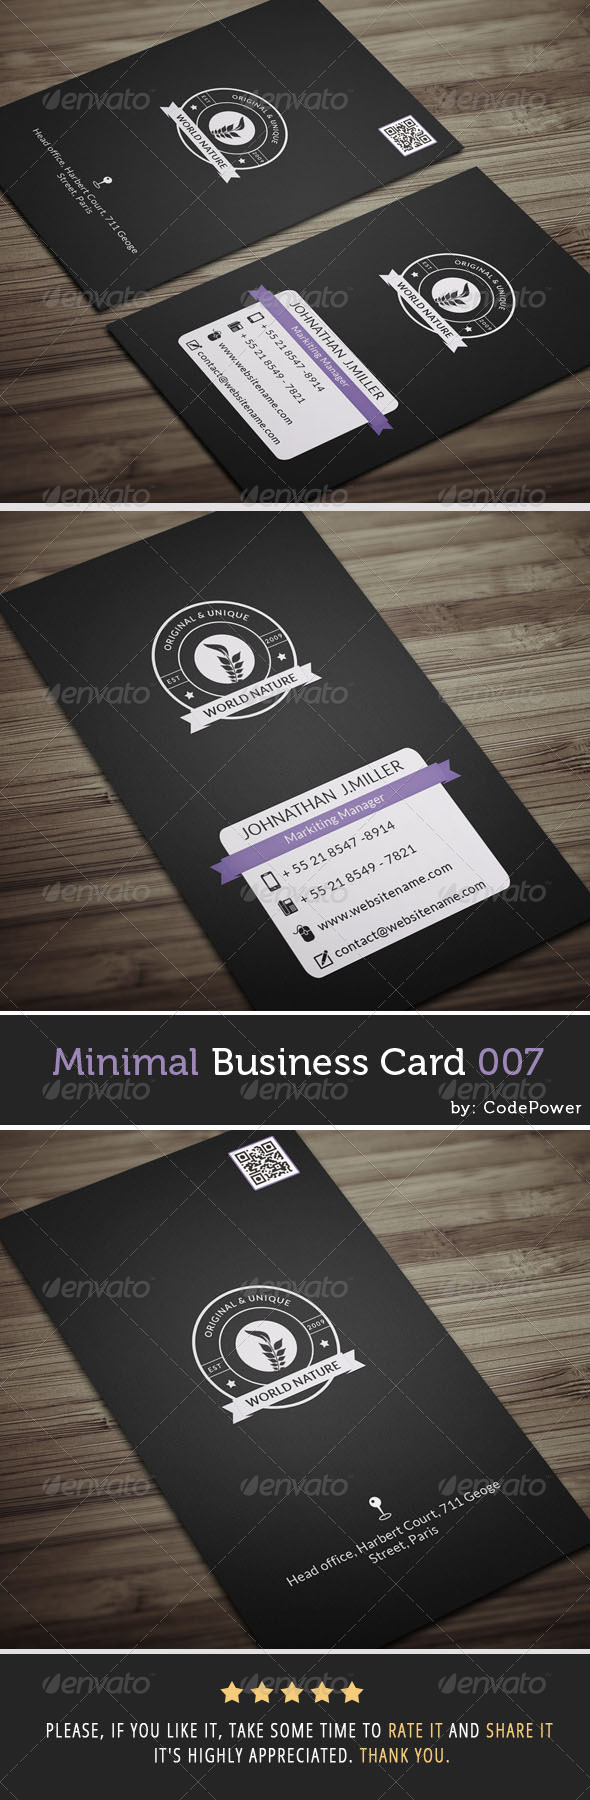 GraphicRiver Minimal Business Card 007 7313190